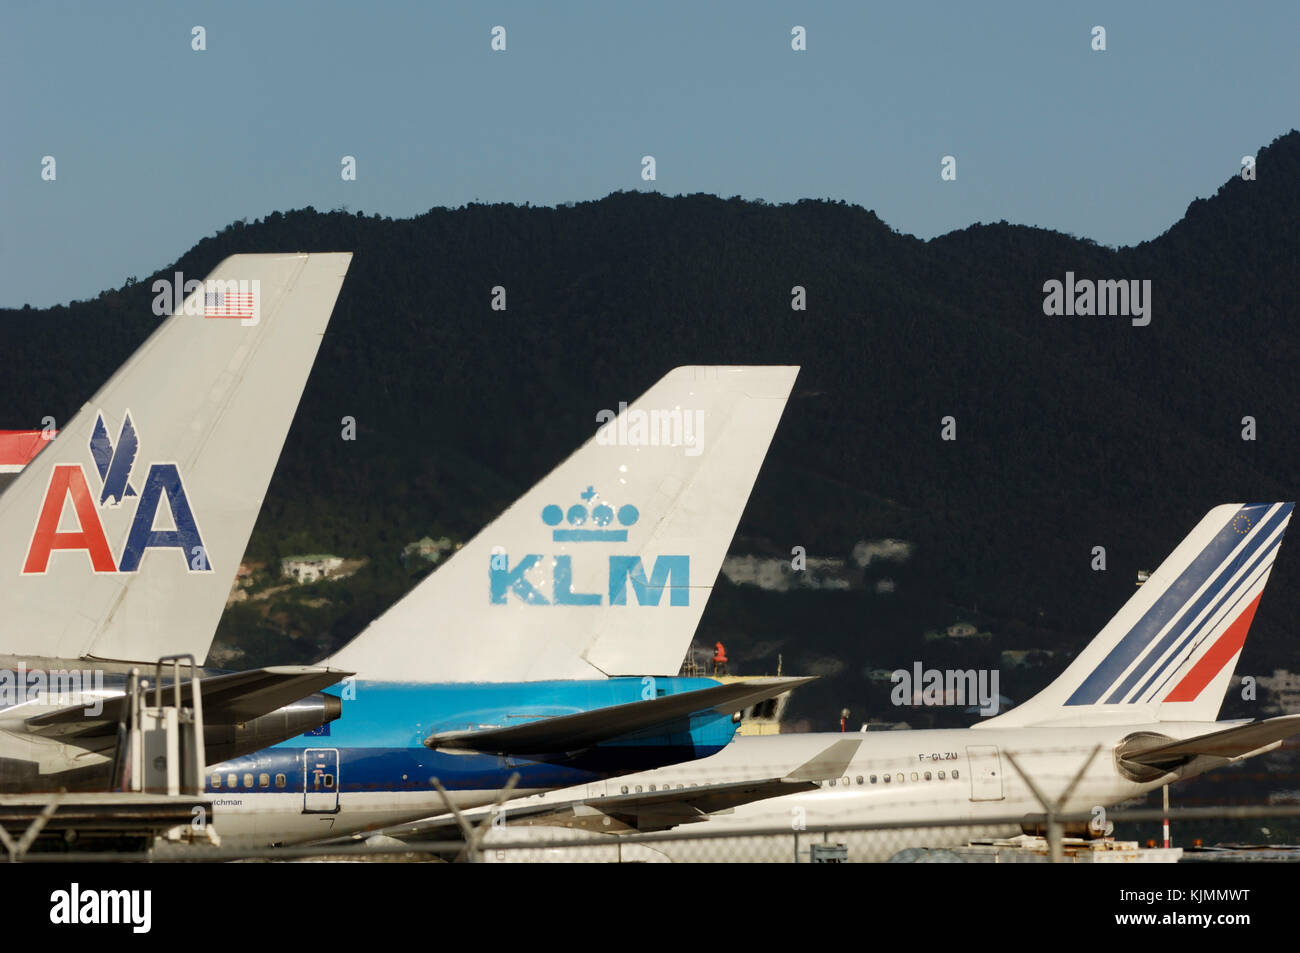 Airliners tail fins, an American Airlines B757, KLM B747 and Air France A340 in a row, on the ground, at Sint Maarten Stock Photo